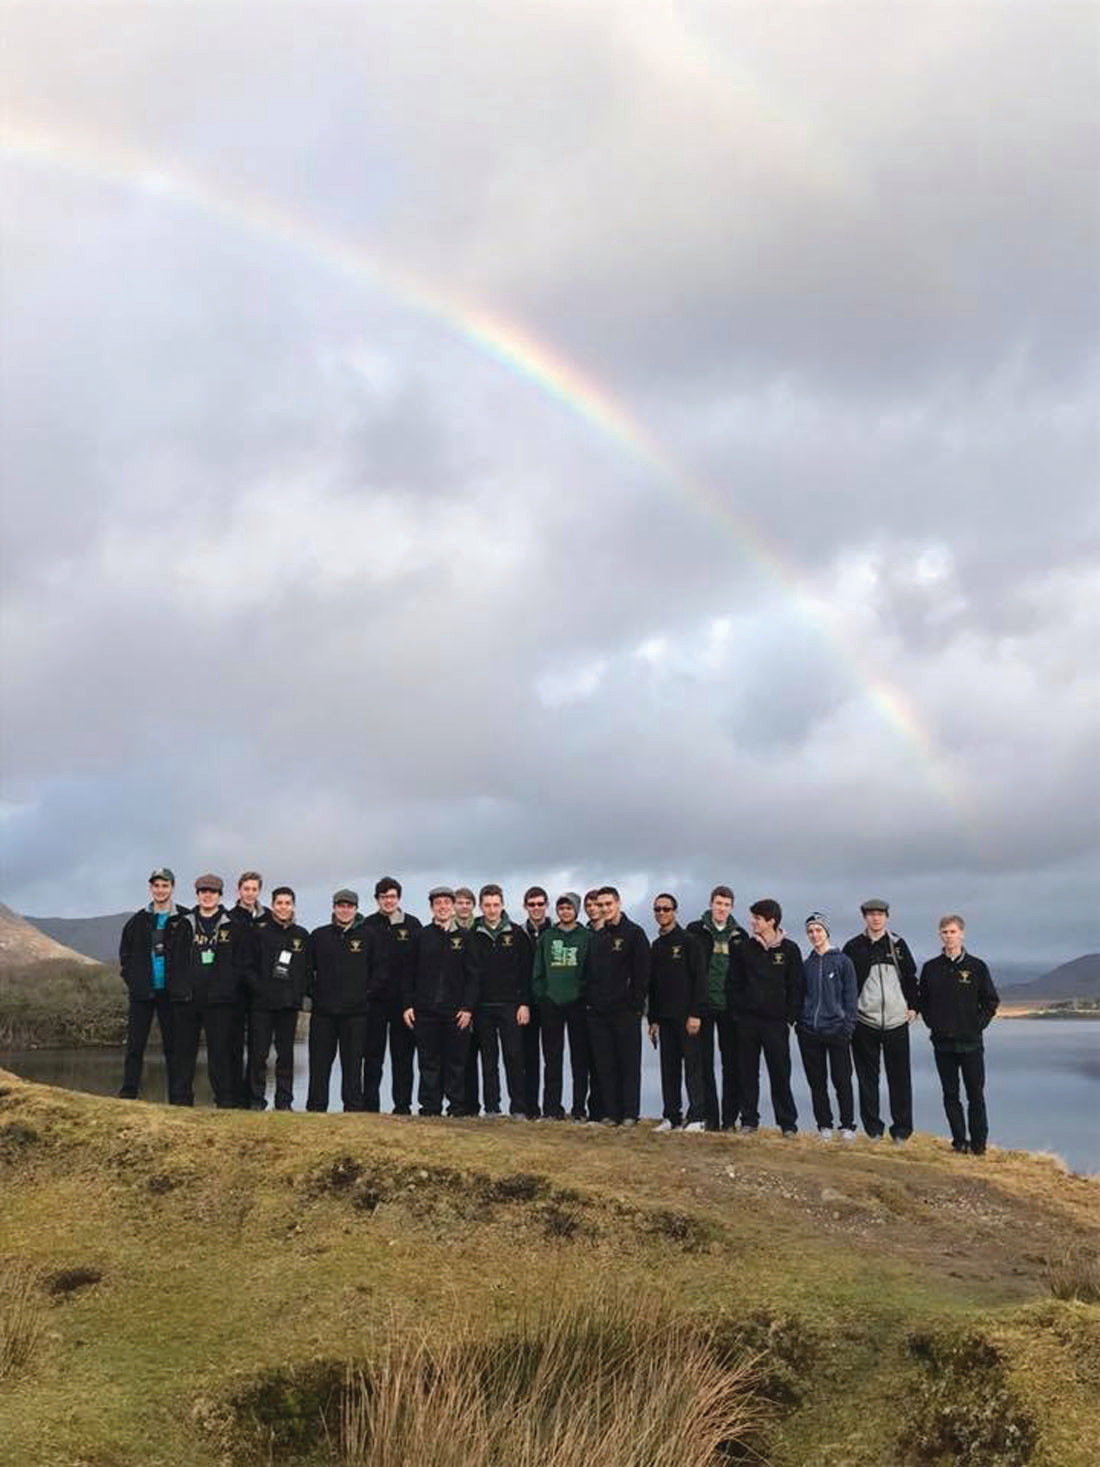 PERFECT SETTING: Hendricken's Young Men's Chorus find the ideal setting for a group picture during their recent pilgrimage tour to Ireland.